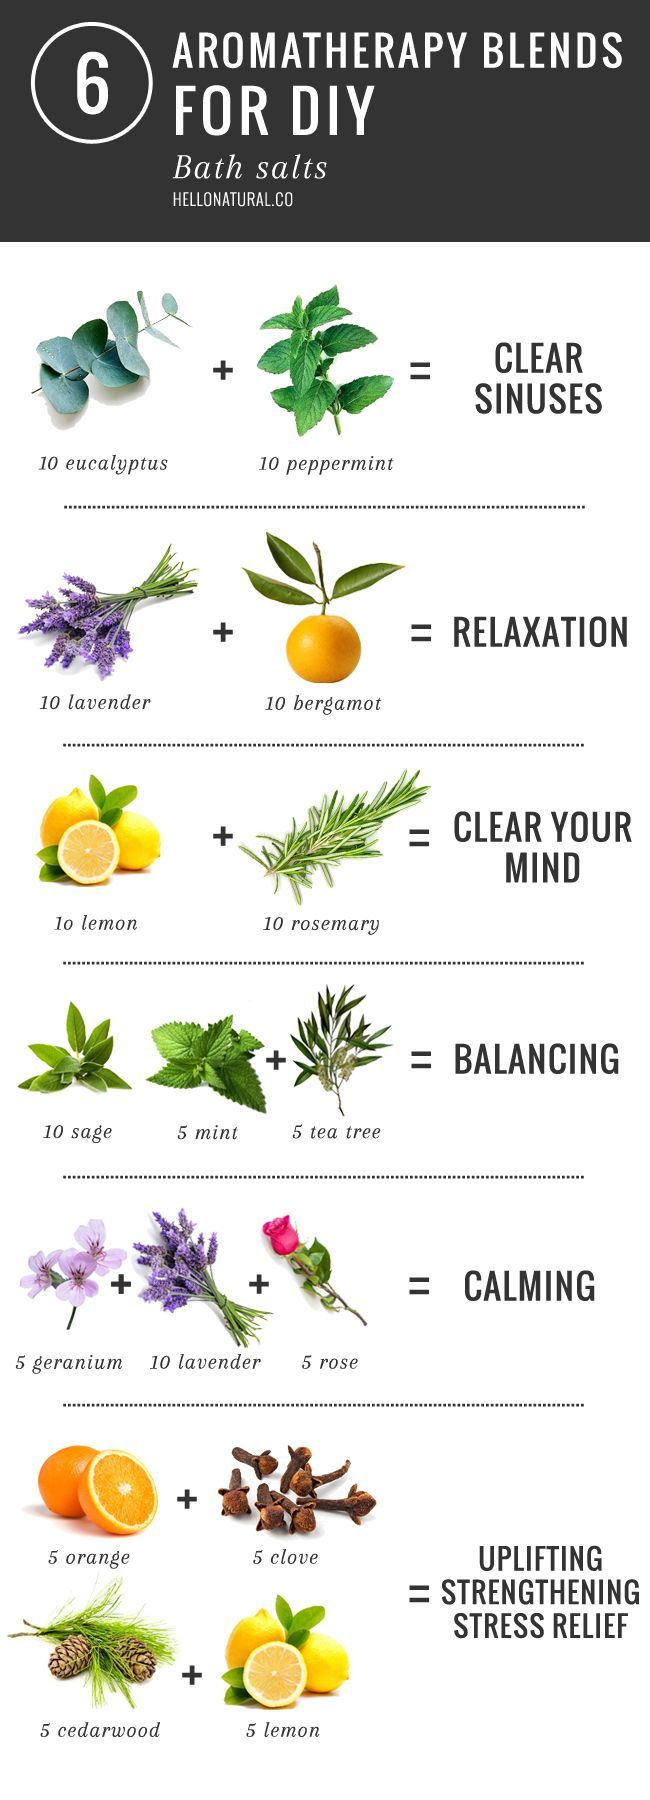 6 Aromatherapy Blends for DIY Bath Salts | HelloNatural.co